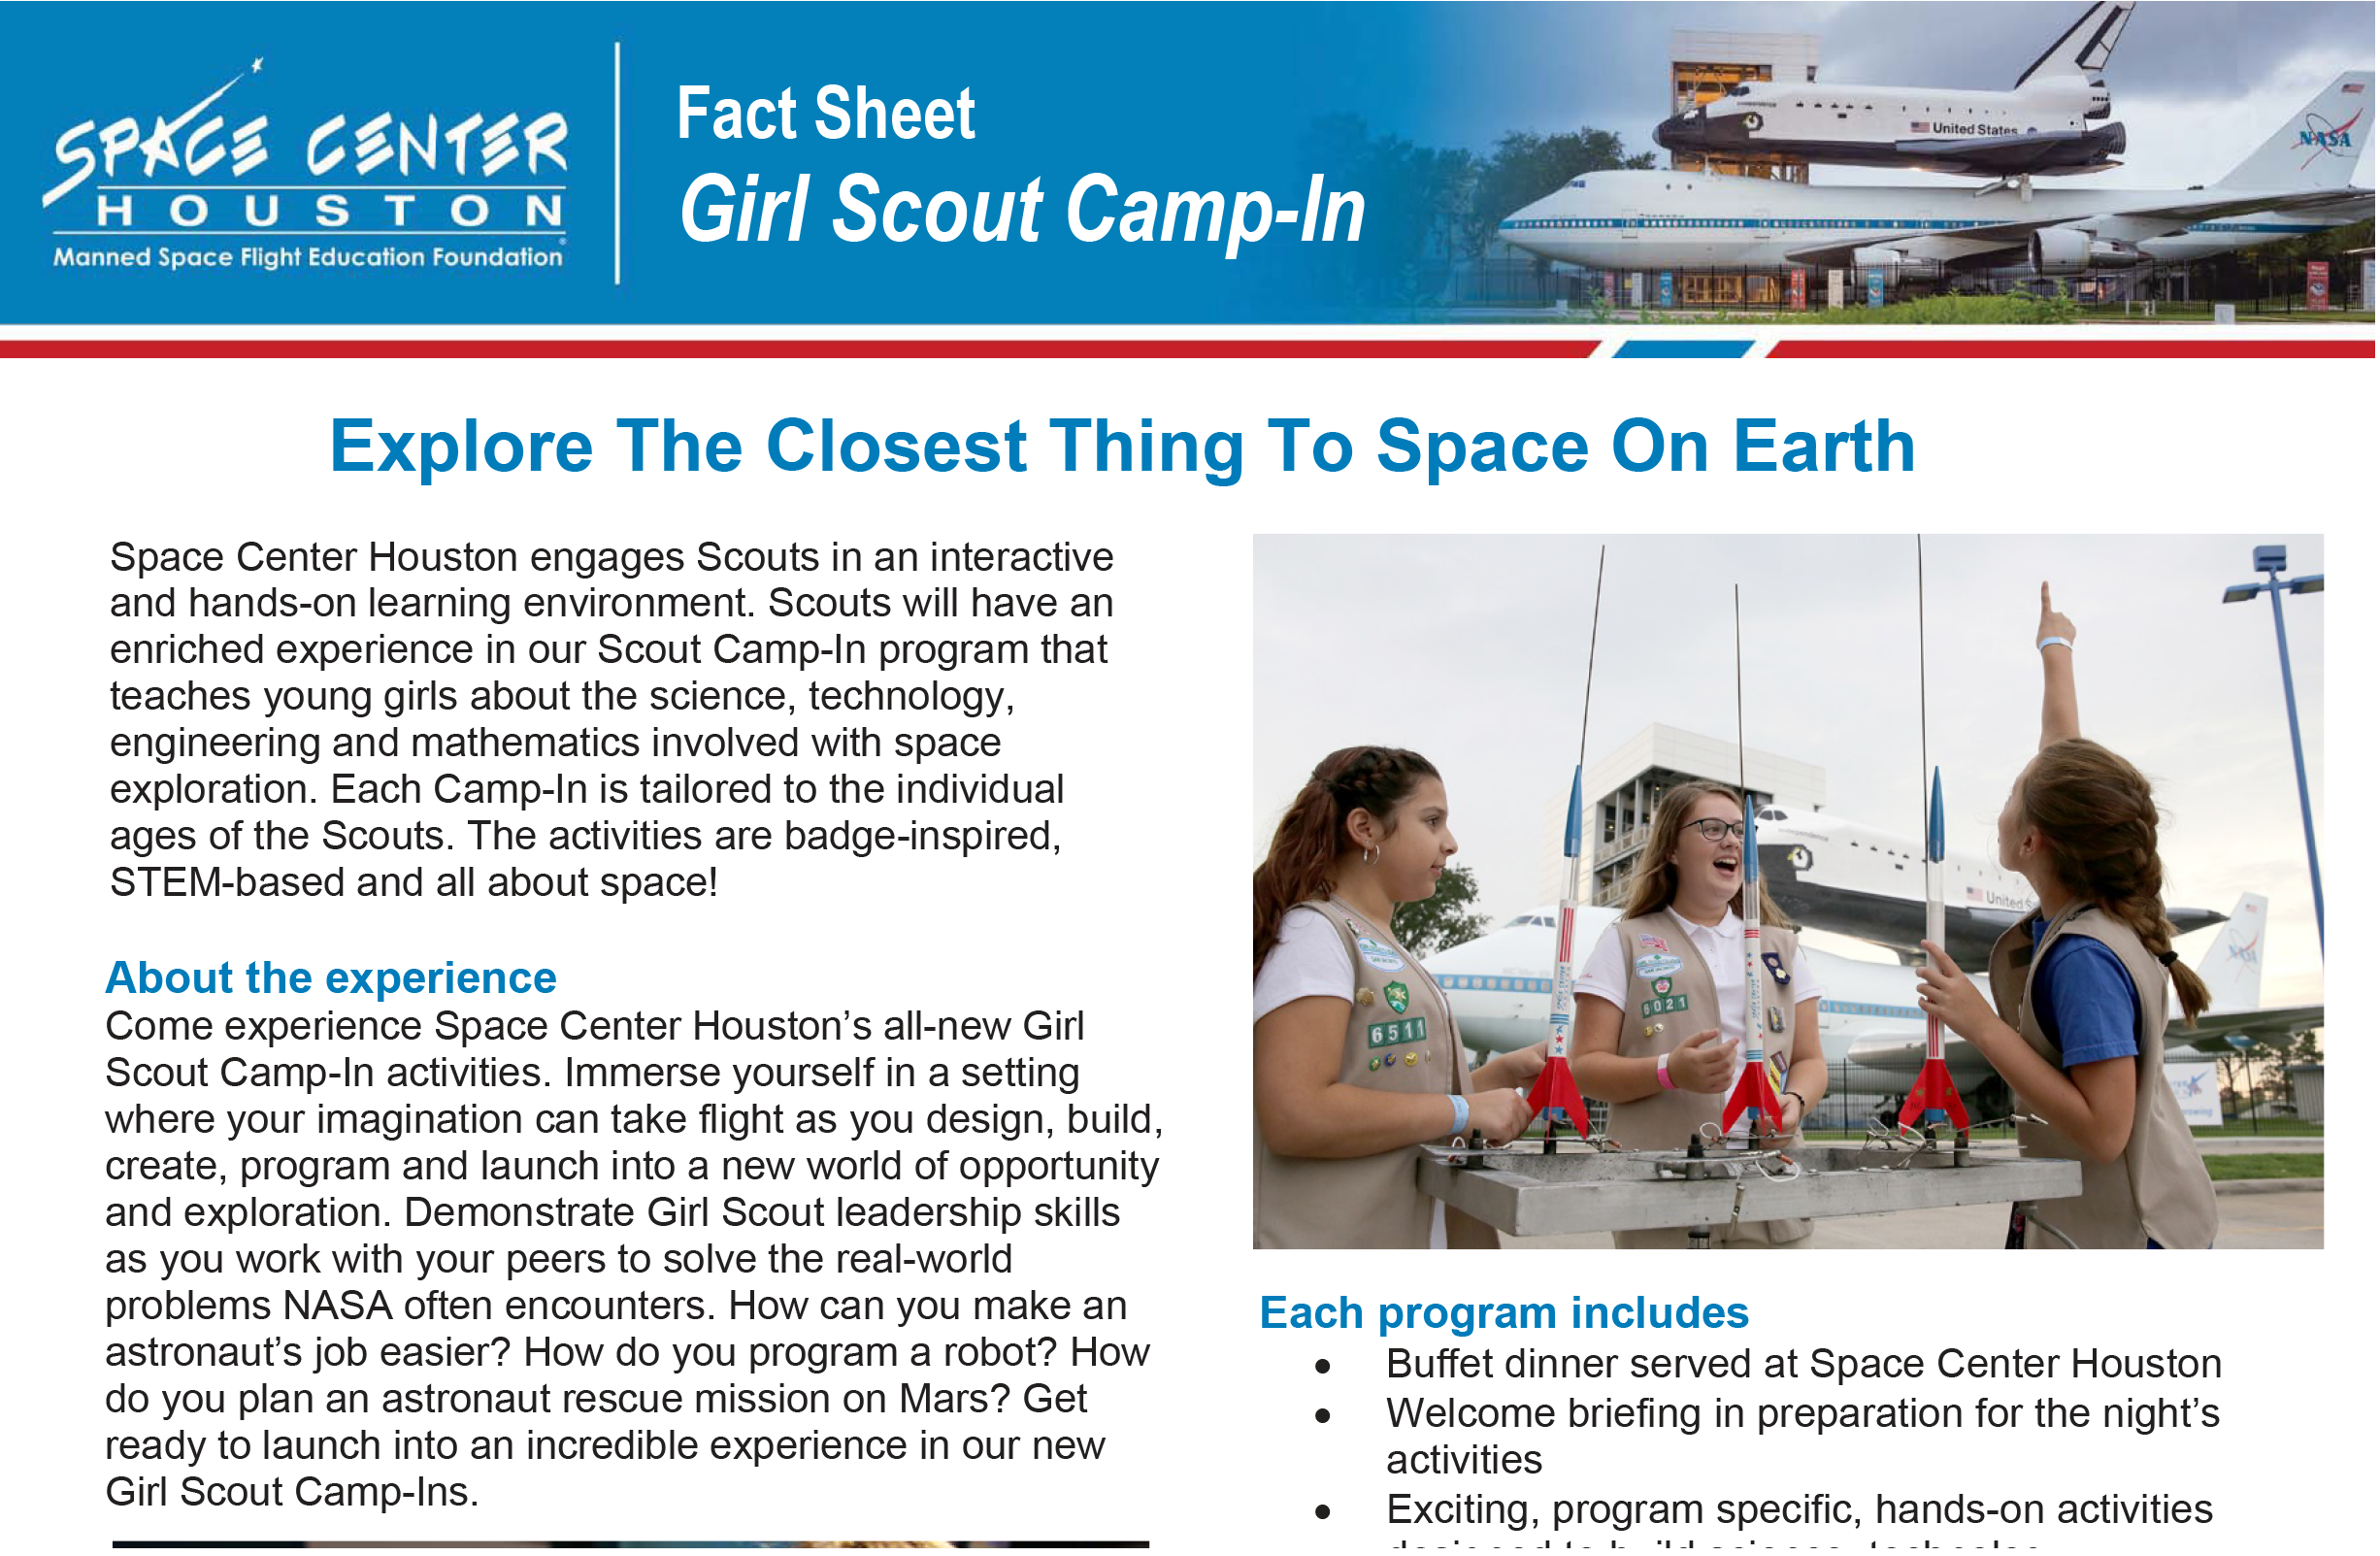 Girl Scout Camp-In Fact Sheet